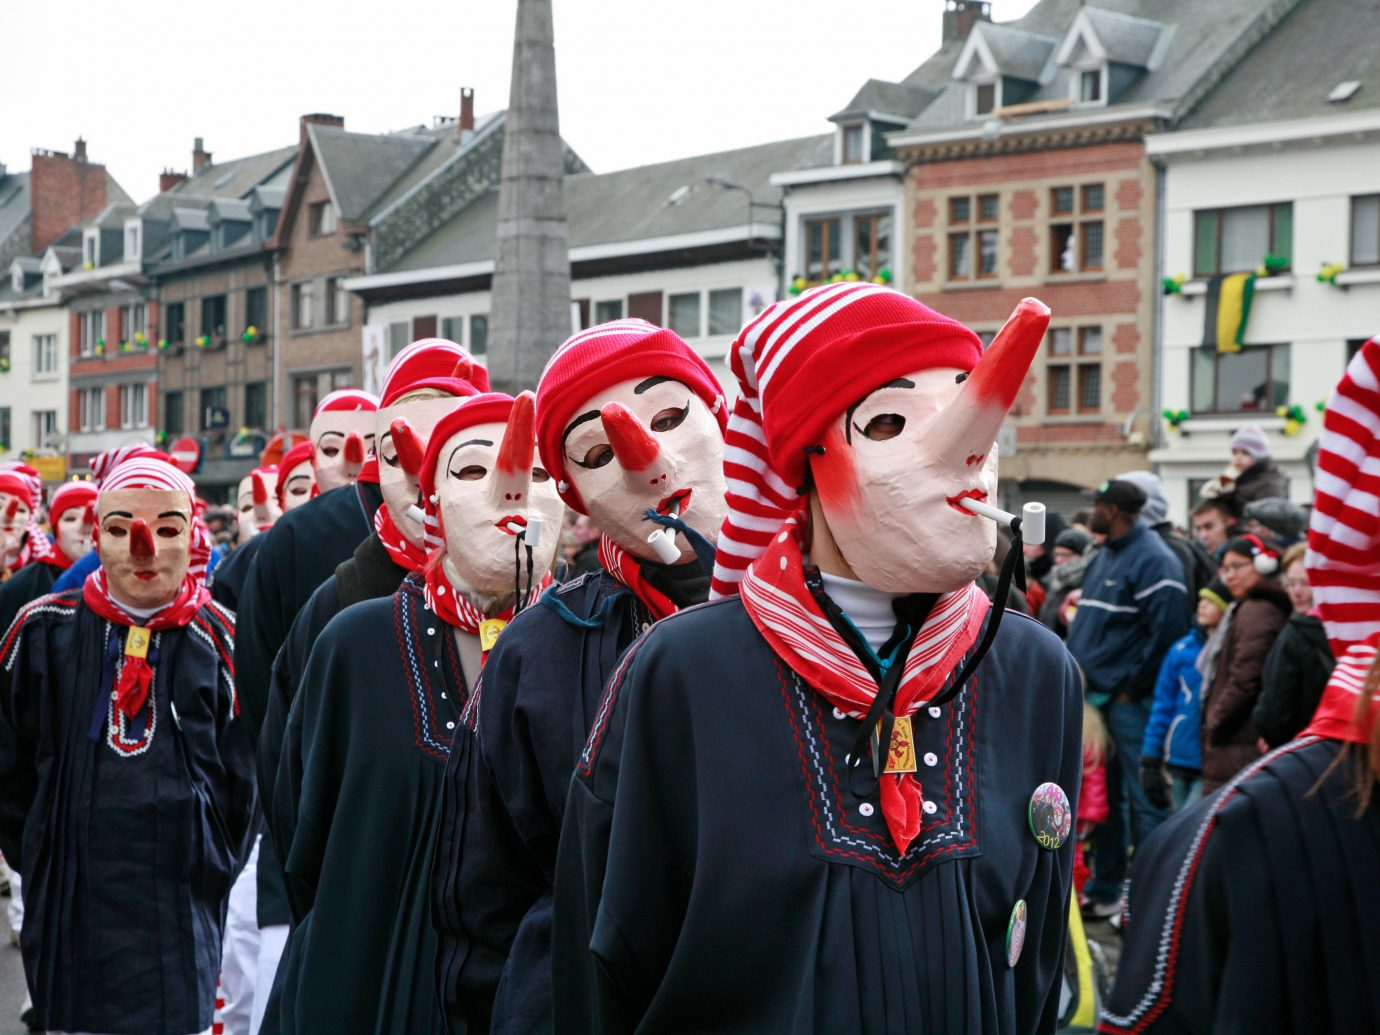 Trip Ideas person outdoor crowd demonstration group standing people event marching festival carnival parade dressed